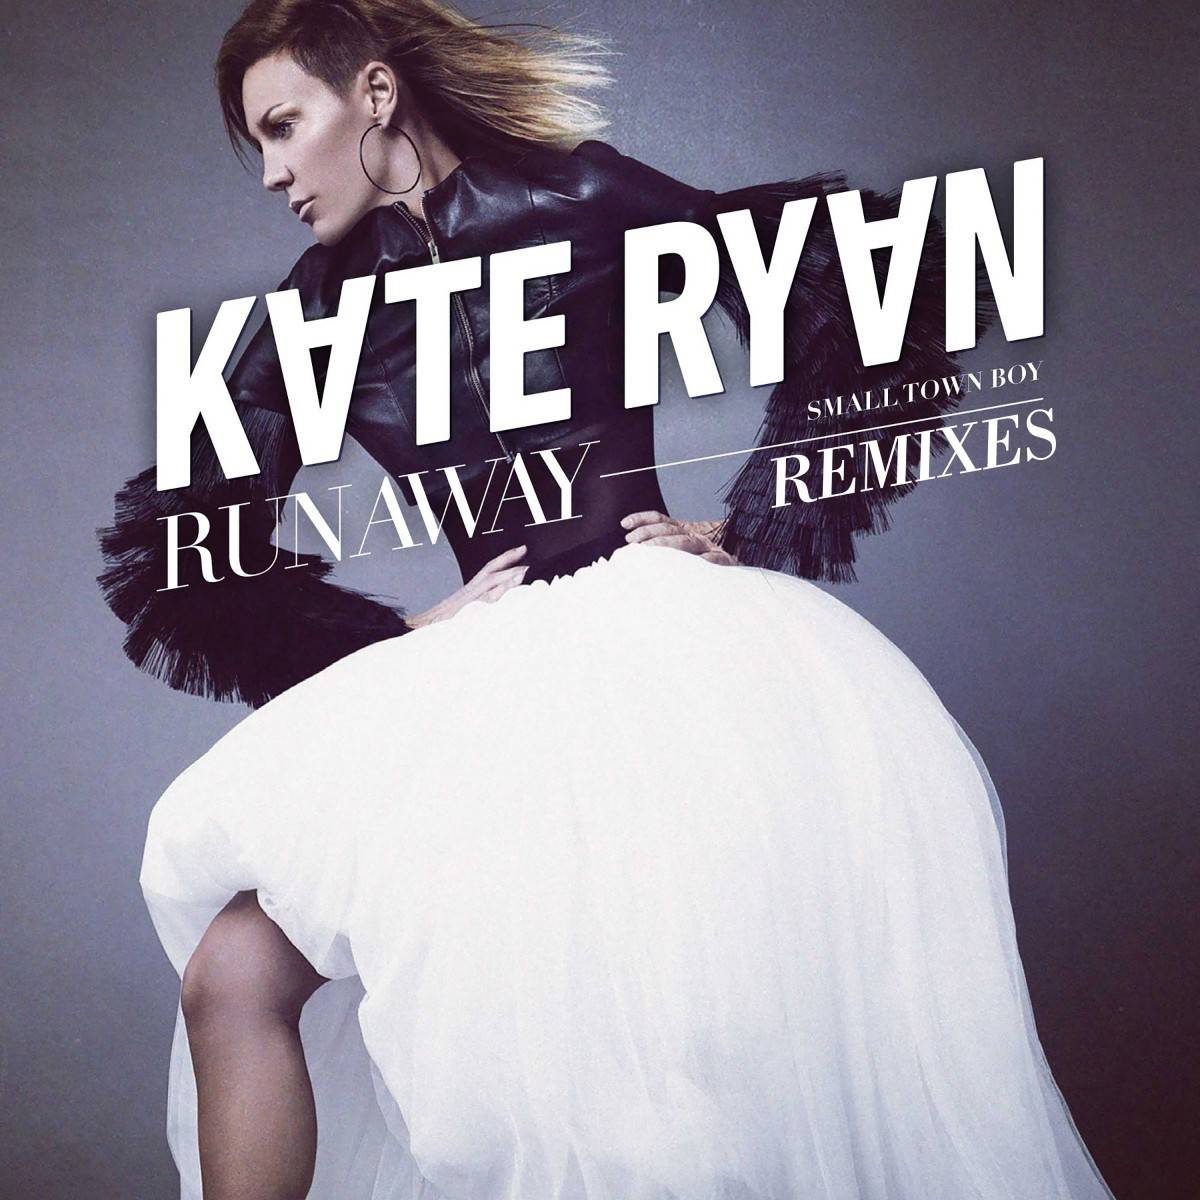 Runaway (Smalltown Boy) – remixes